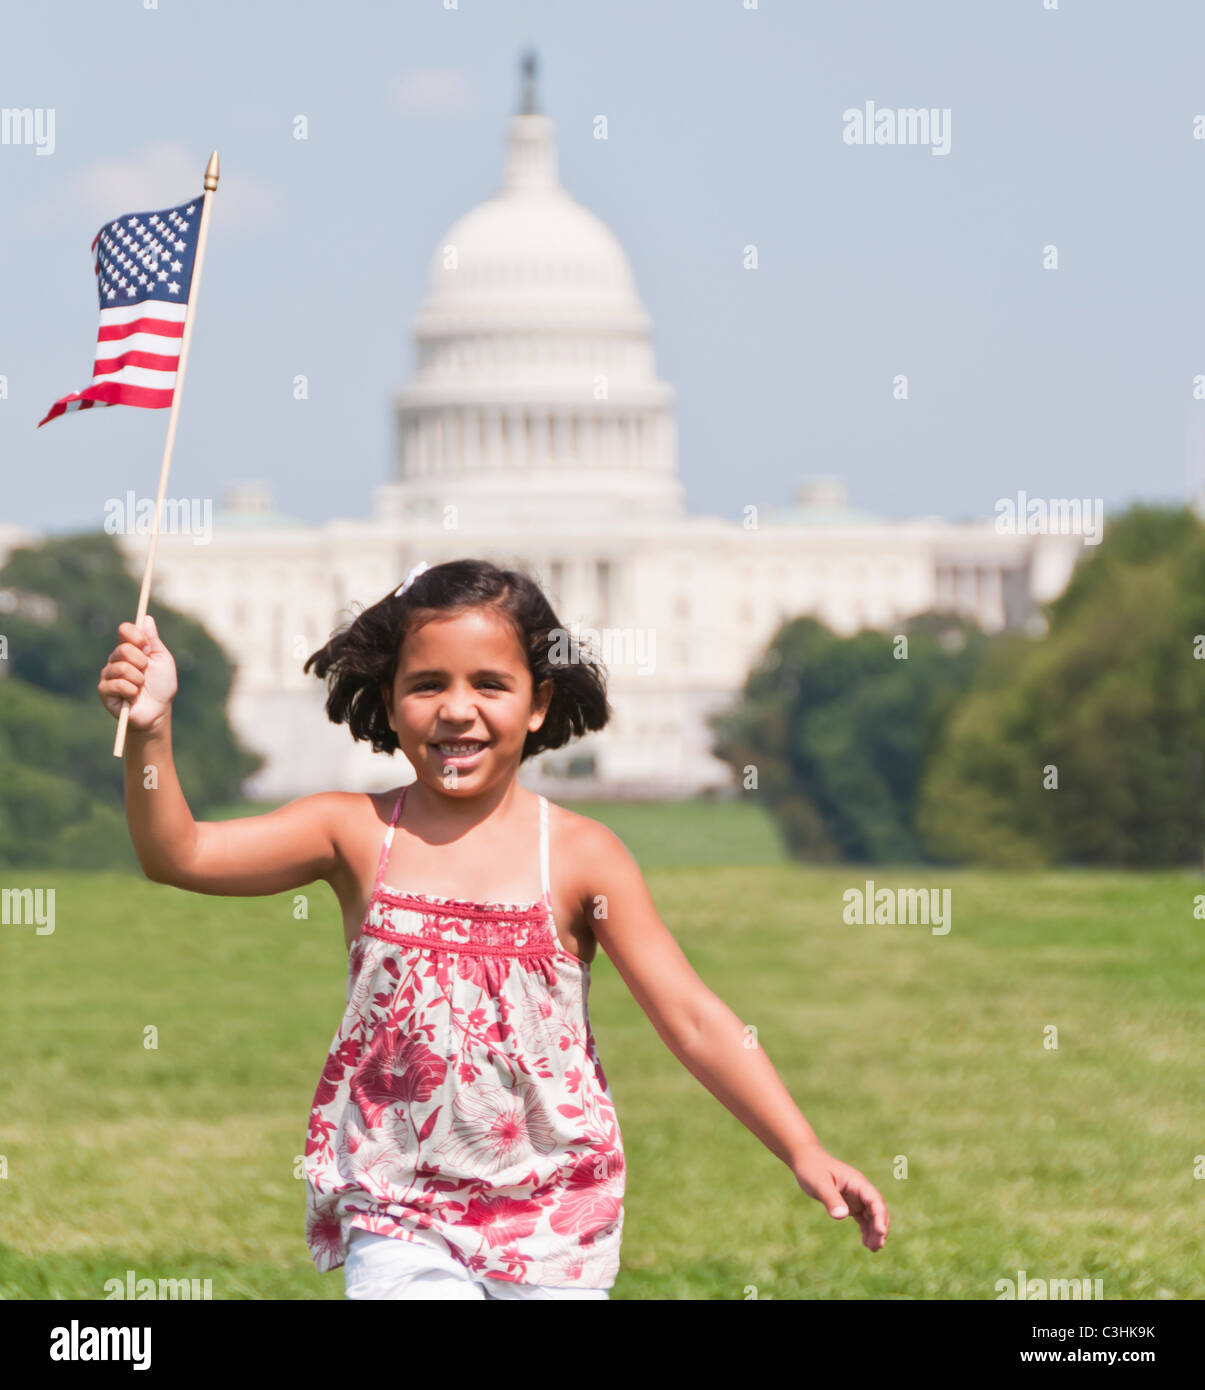 USA, Washington DC, girl (10-11) with US flag running in front of Capitol Building - Stock Image